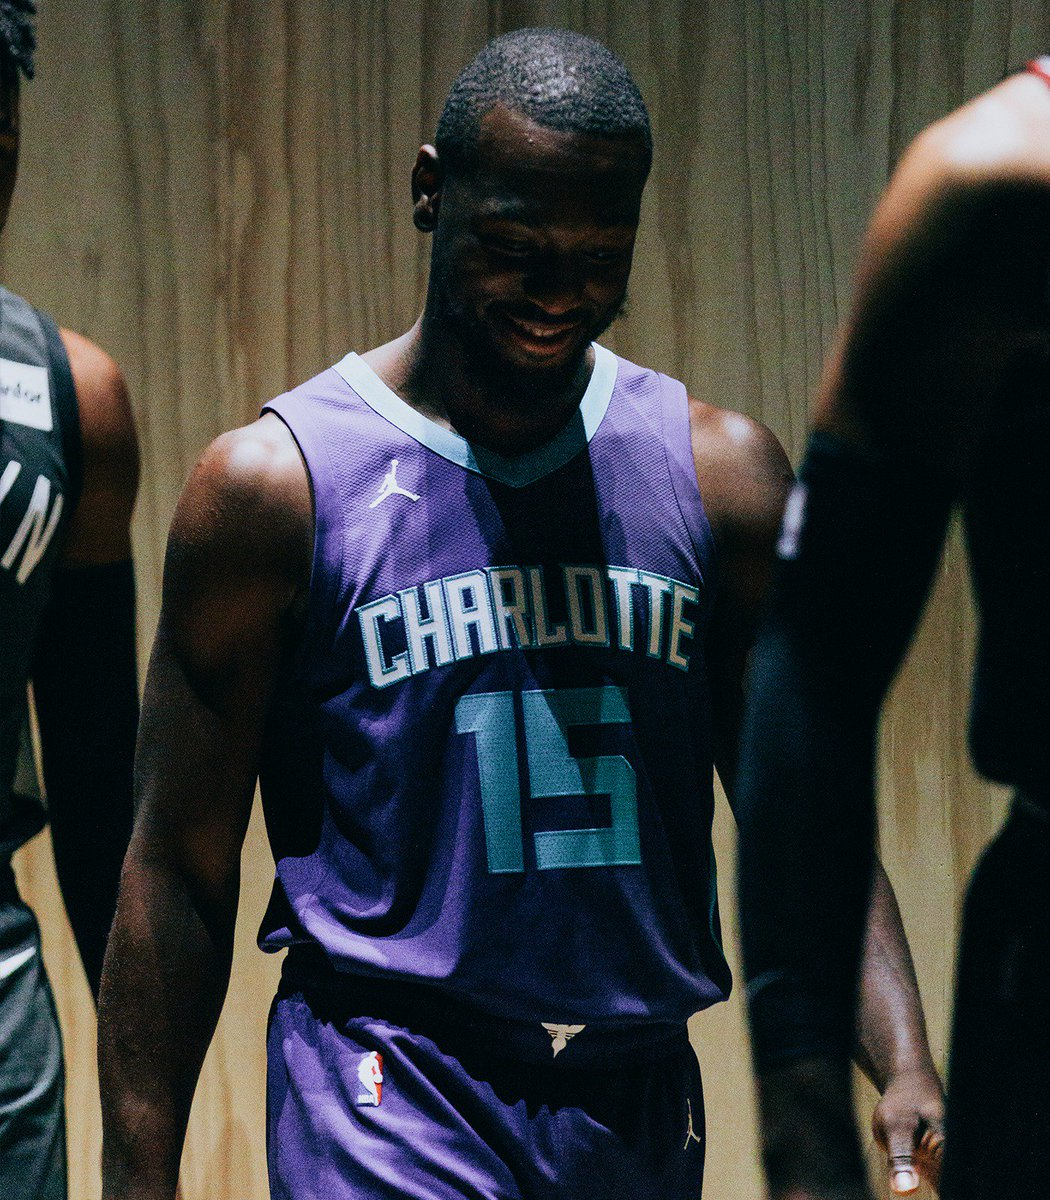 RT Jumpman23: .KembaWalker reveals the Hornets &#39;Statement&#39; jersey with NikeConnect technology. #NIKExNBA <br>http://pic.twitter.com/X53oZ7znUV #NBA #Bas…